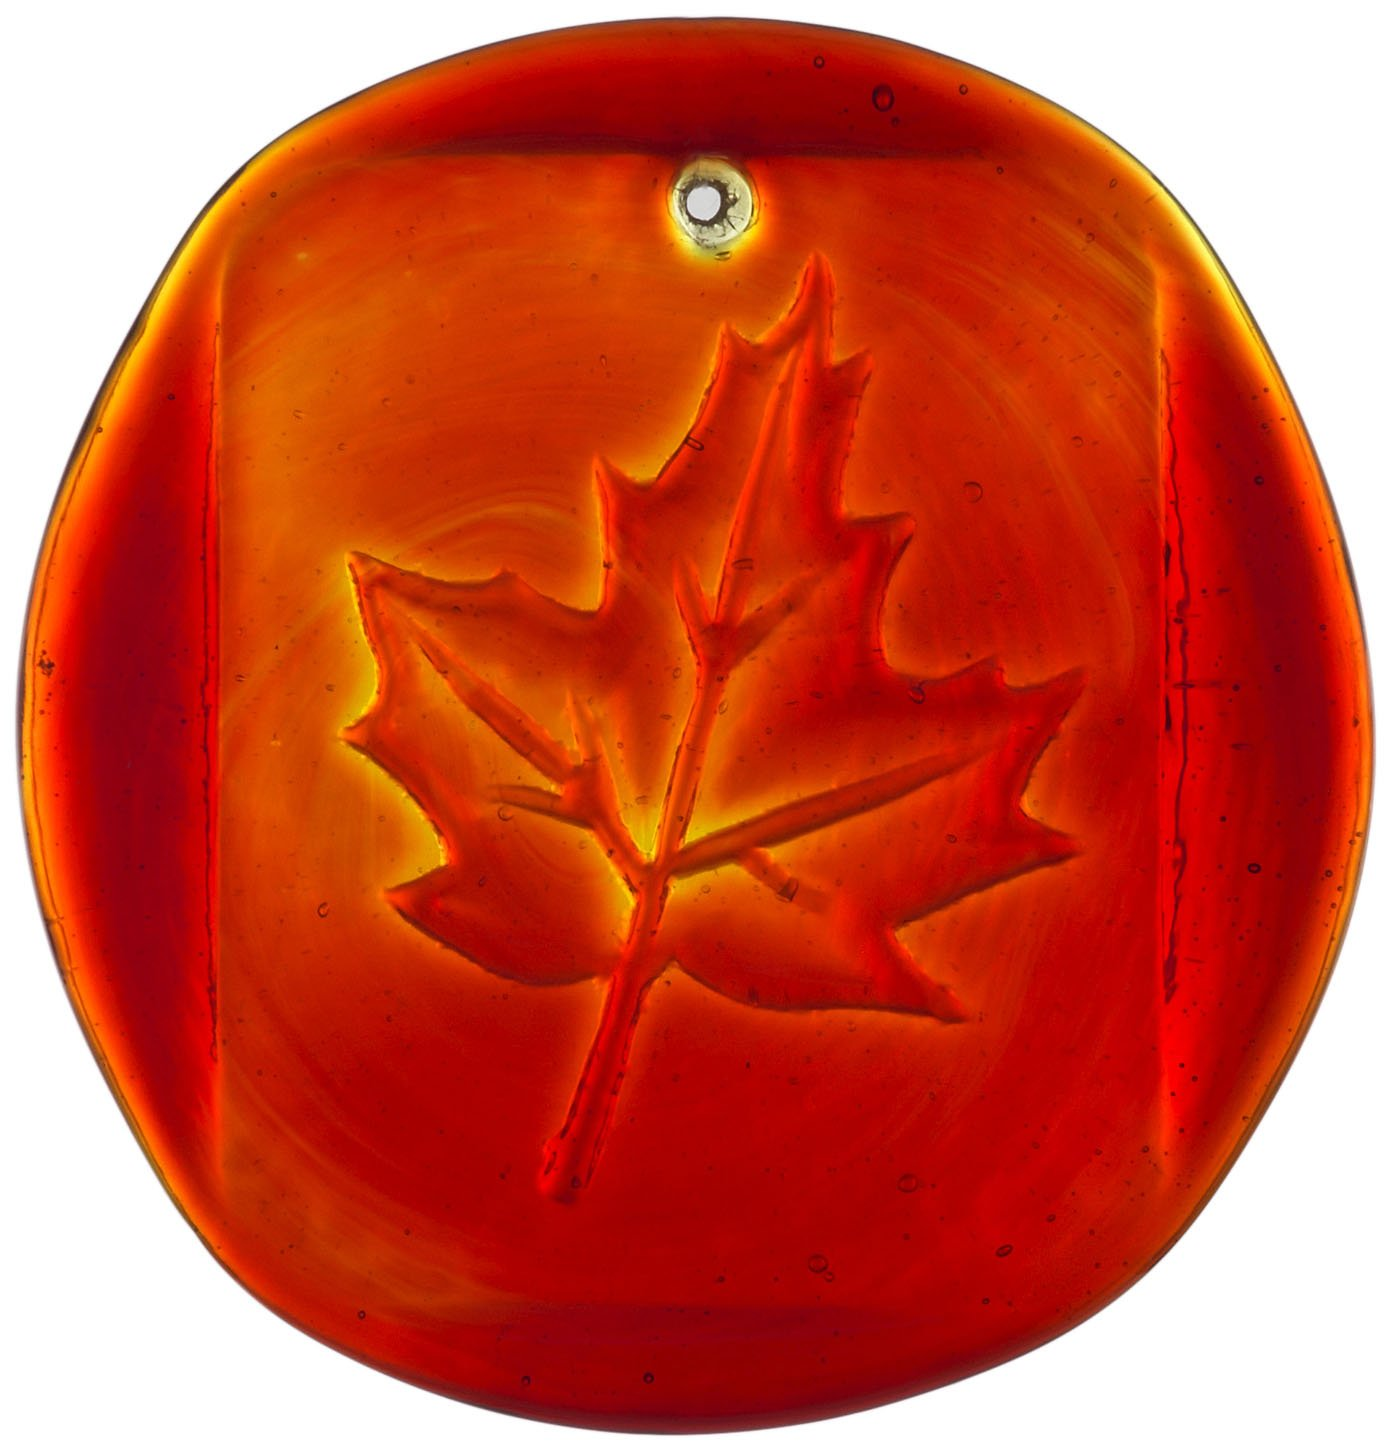 Kitras Maple Leaves Suncatcher, Red